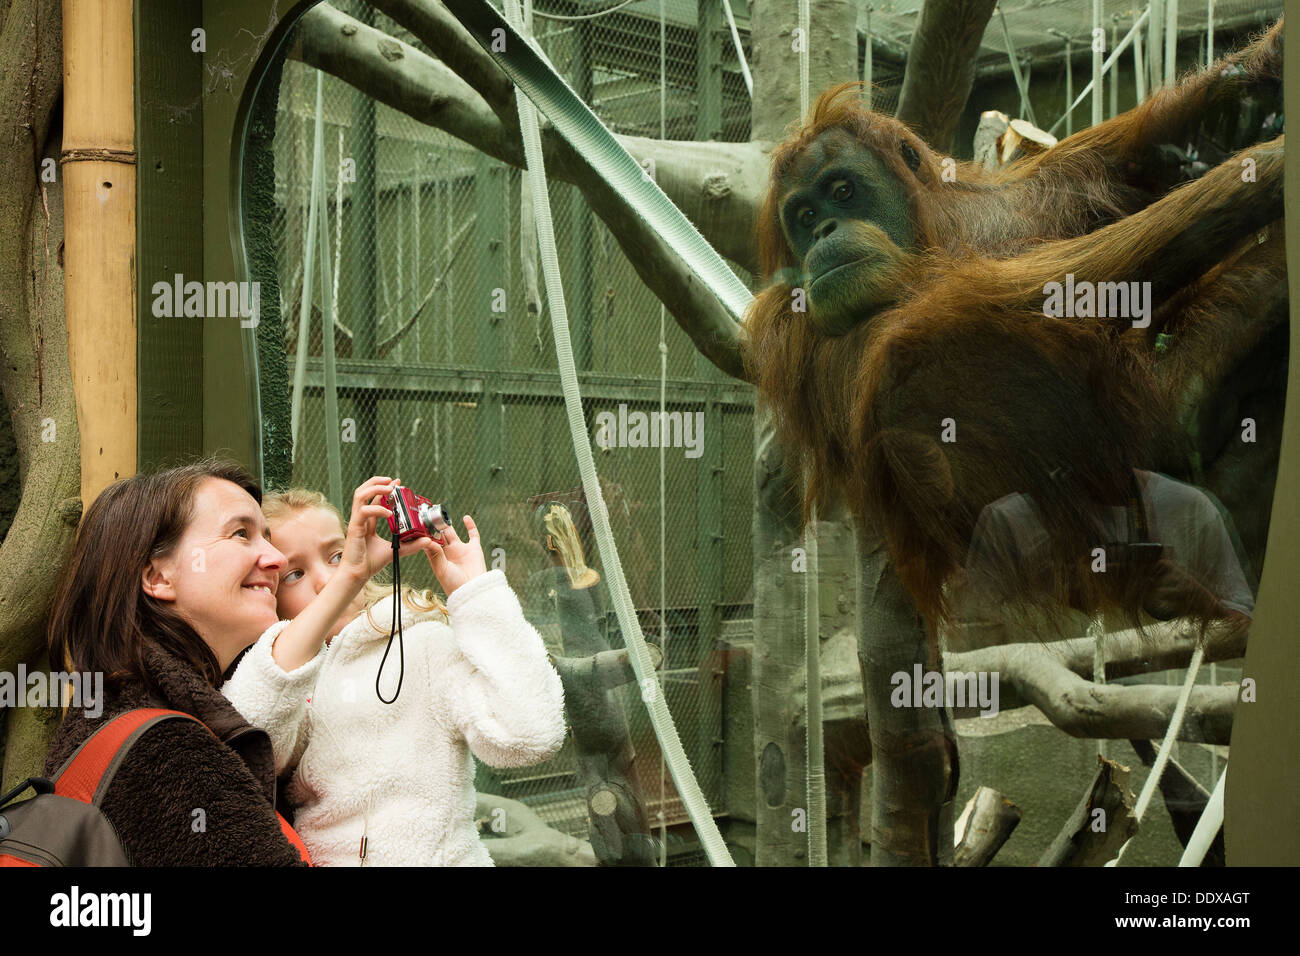 Woman and child watching and photographing an orangutan in its enclosure at Chester Zoo - Stock Image